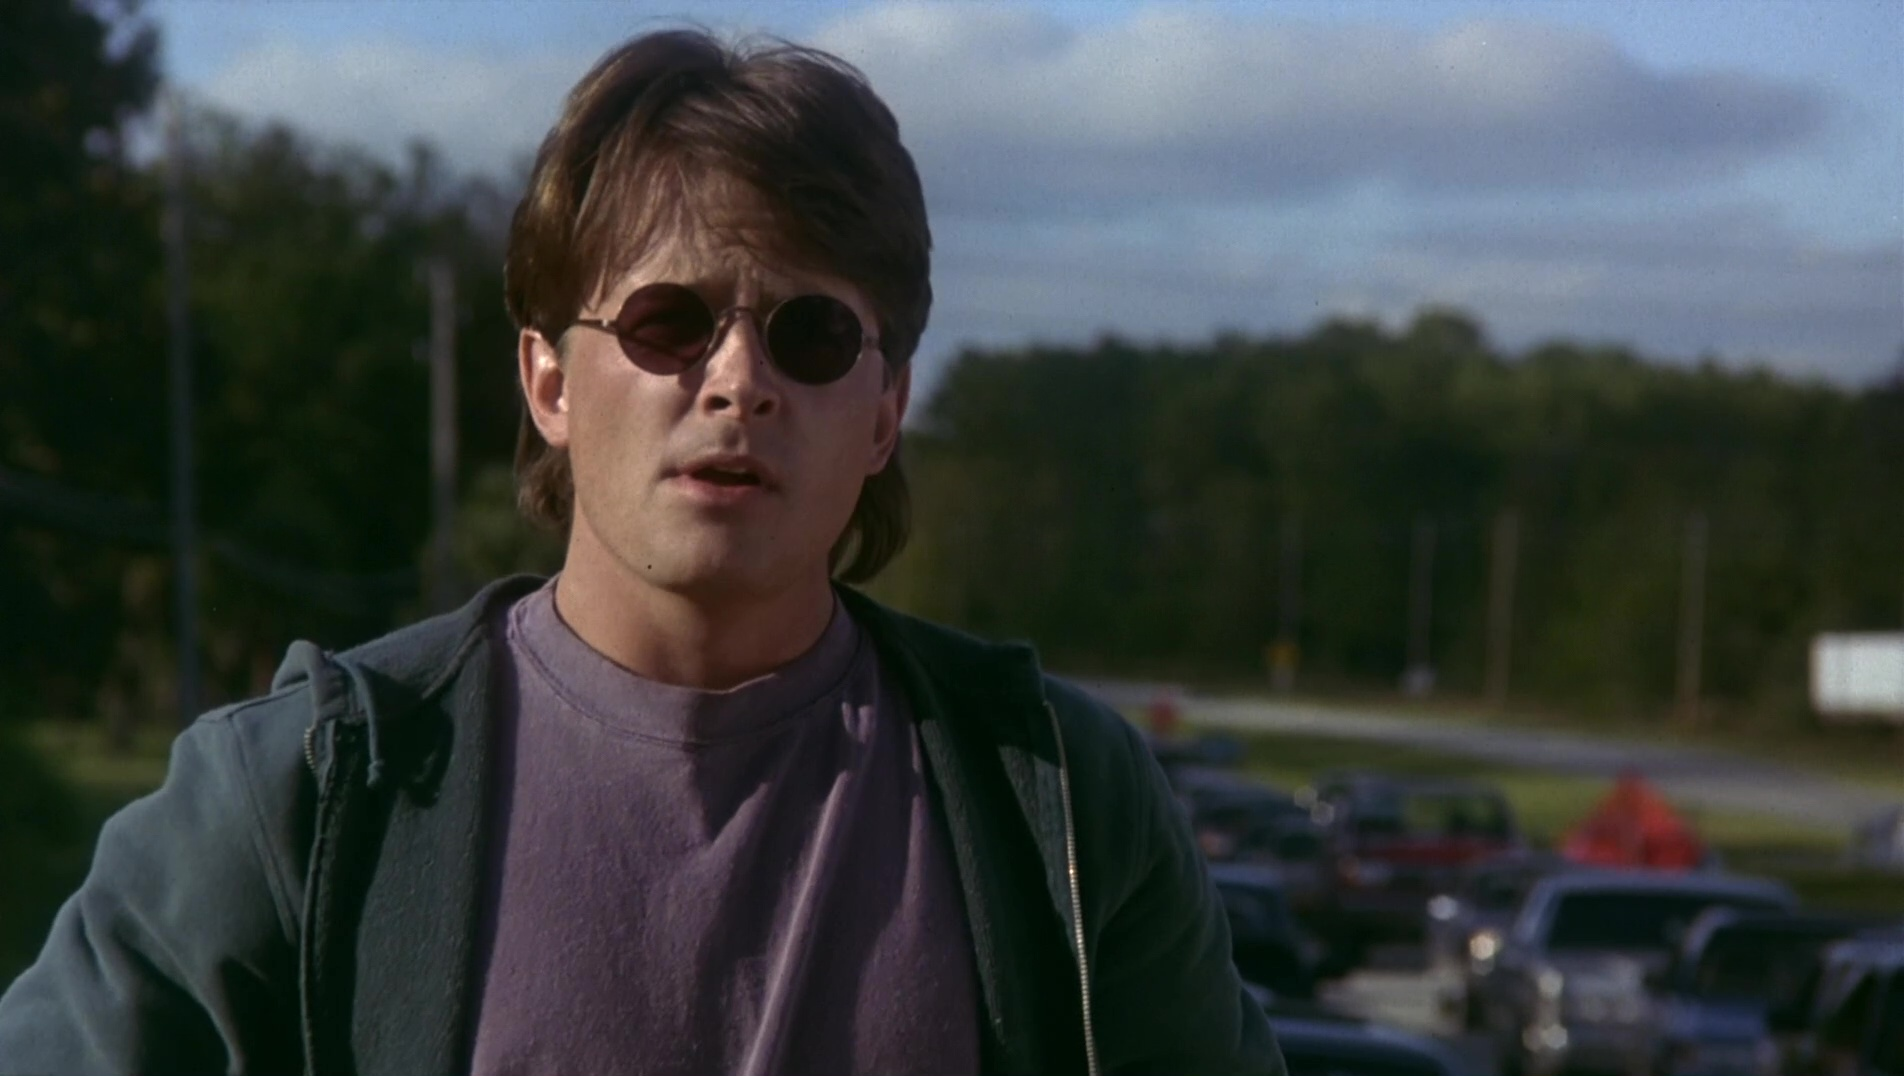 Oliver Peoples Sunglasses Worn By Michael J Fox In Doc Hollywood 1991 Movie Scenes